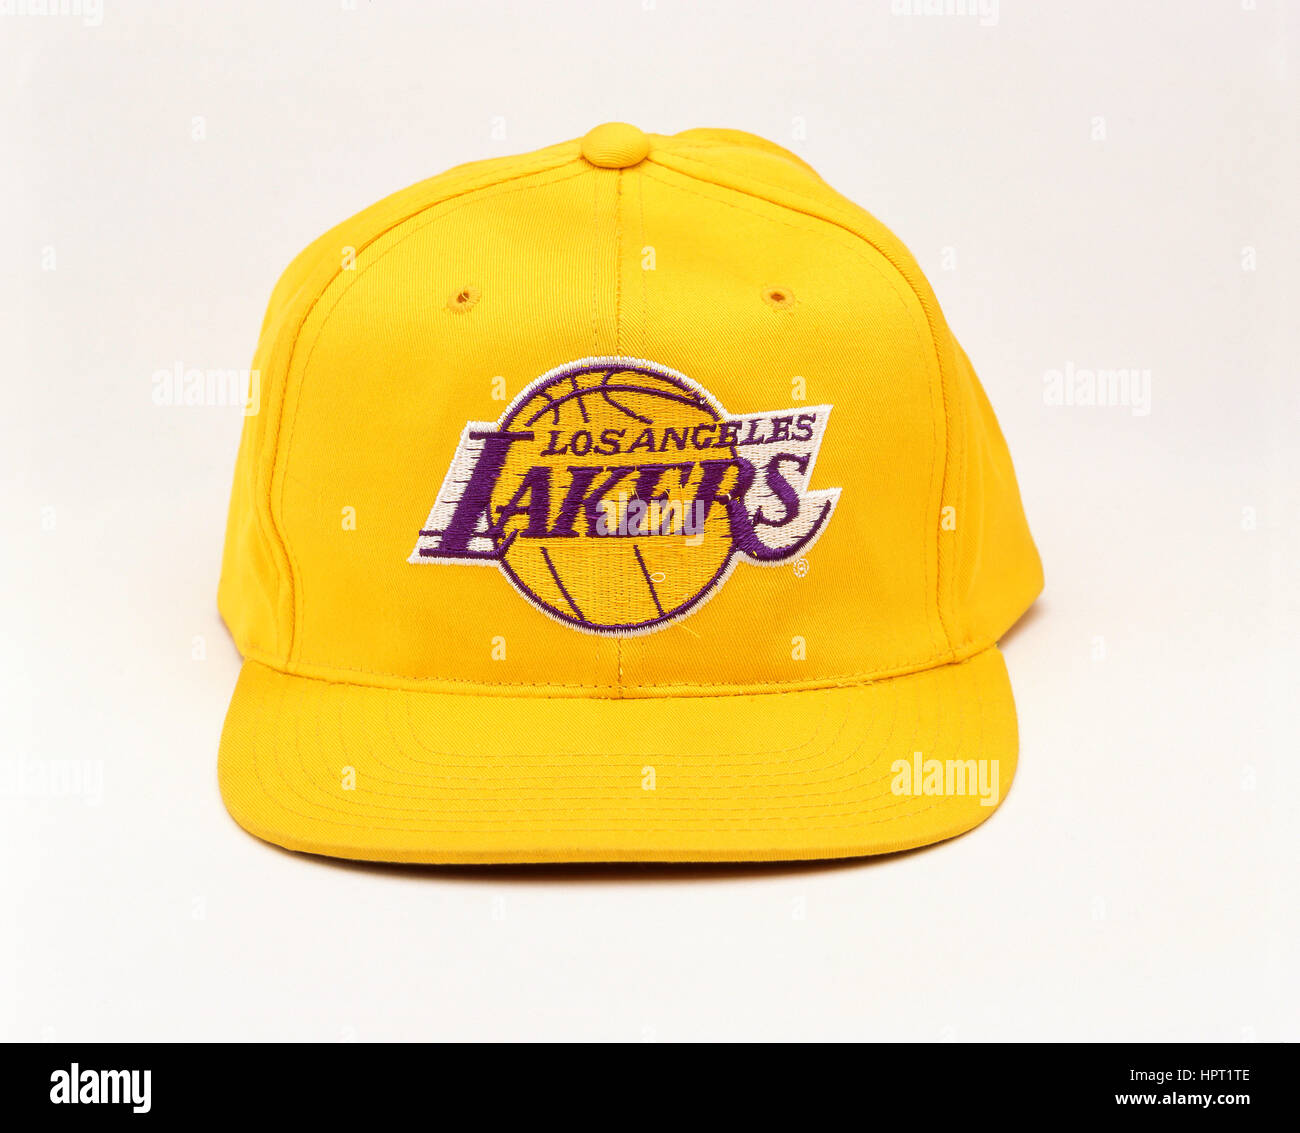 28793a2d524 Los Angeles Lakers Stock Photos   Los Angeles Lakers Stock Images ...